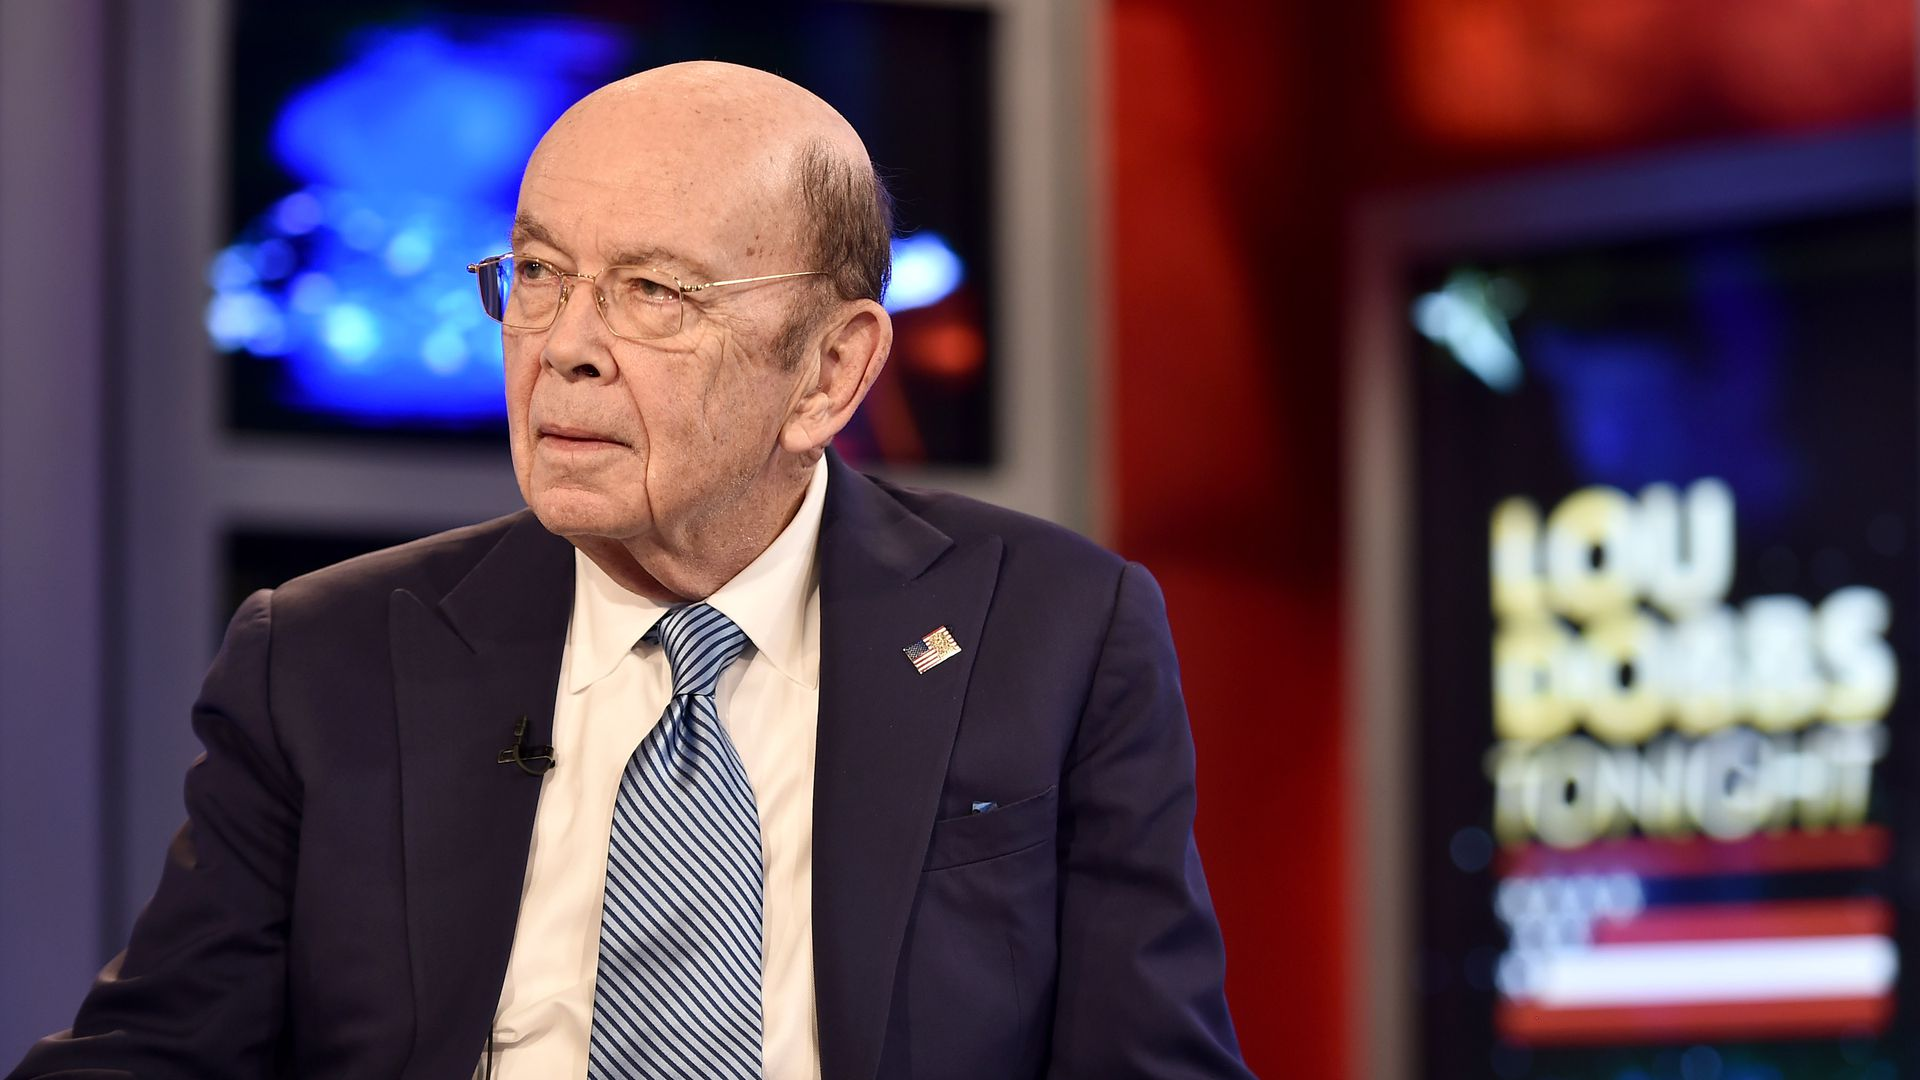 Secretary Of Commerce Wilbur Ross Visits 'Lou Dobbs Tonight